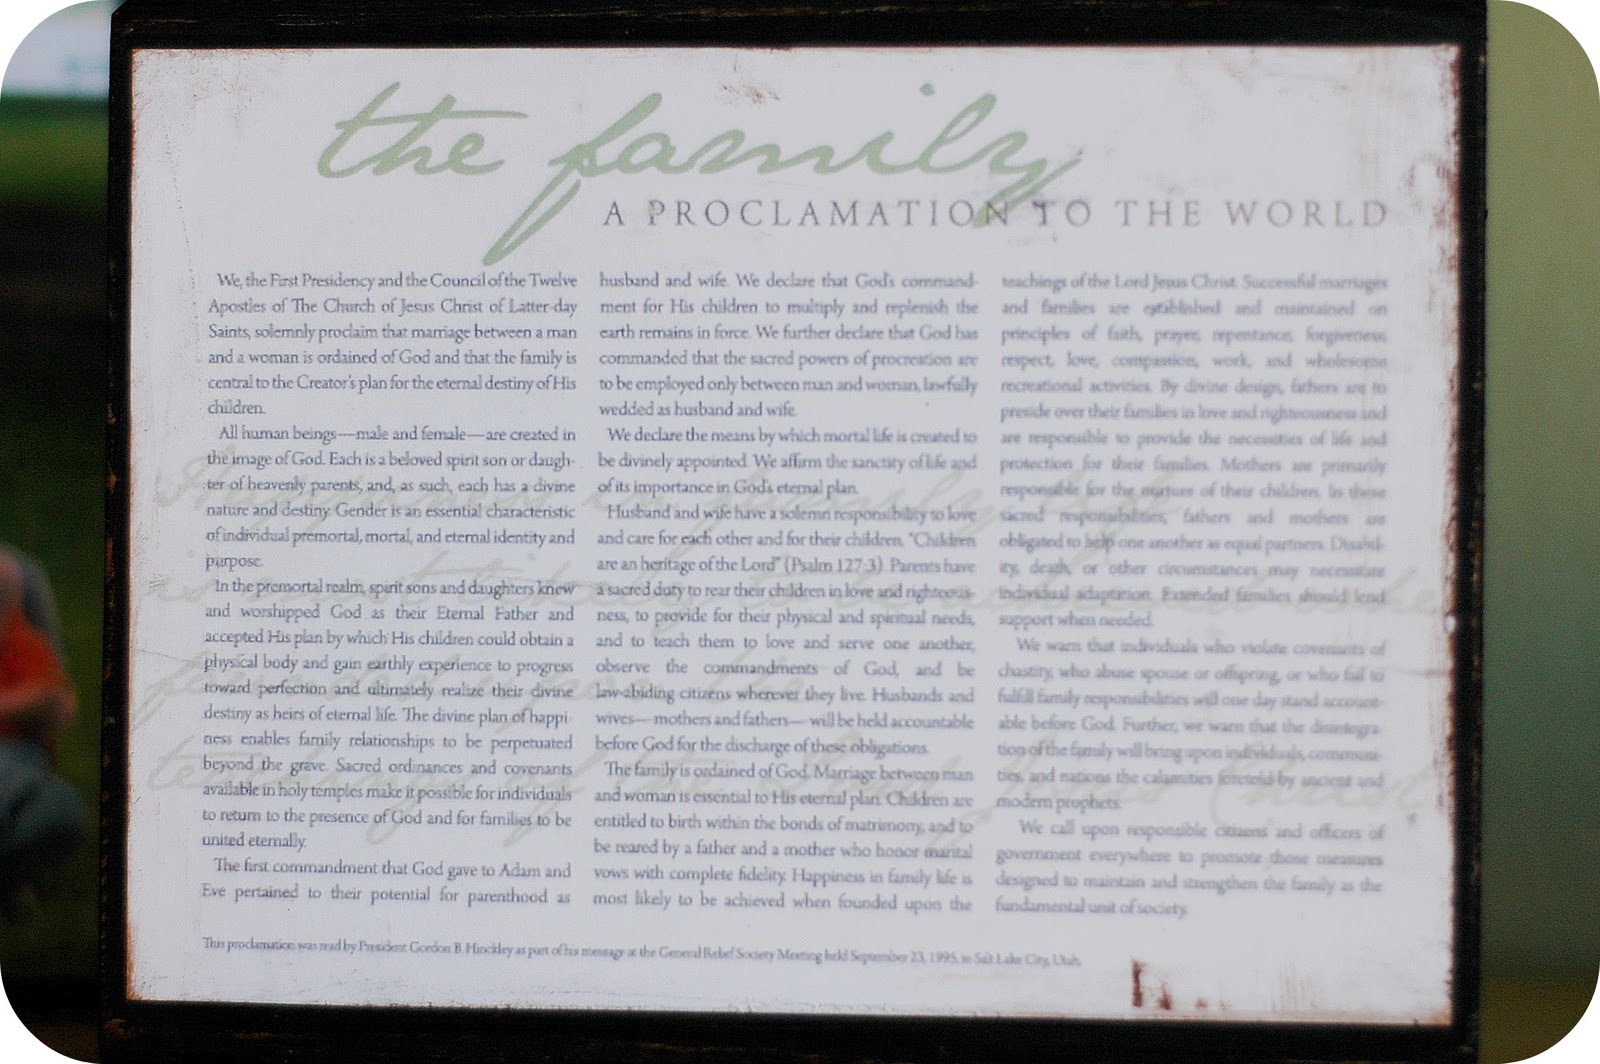 The Family and Children–A Proclamation to the World